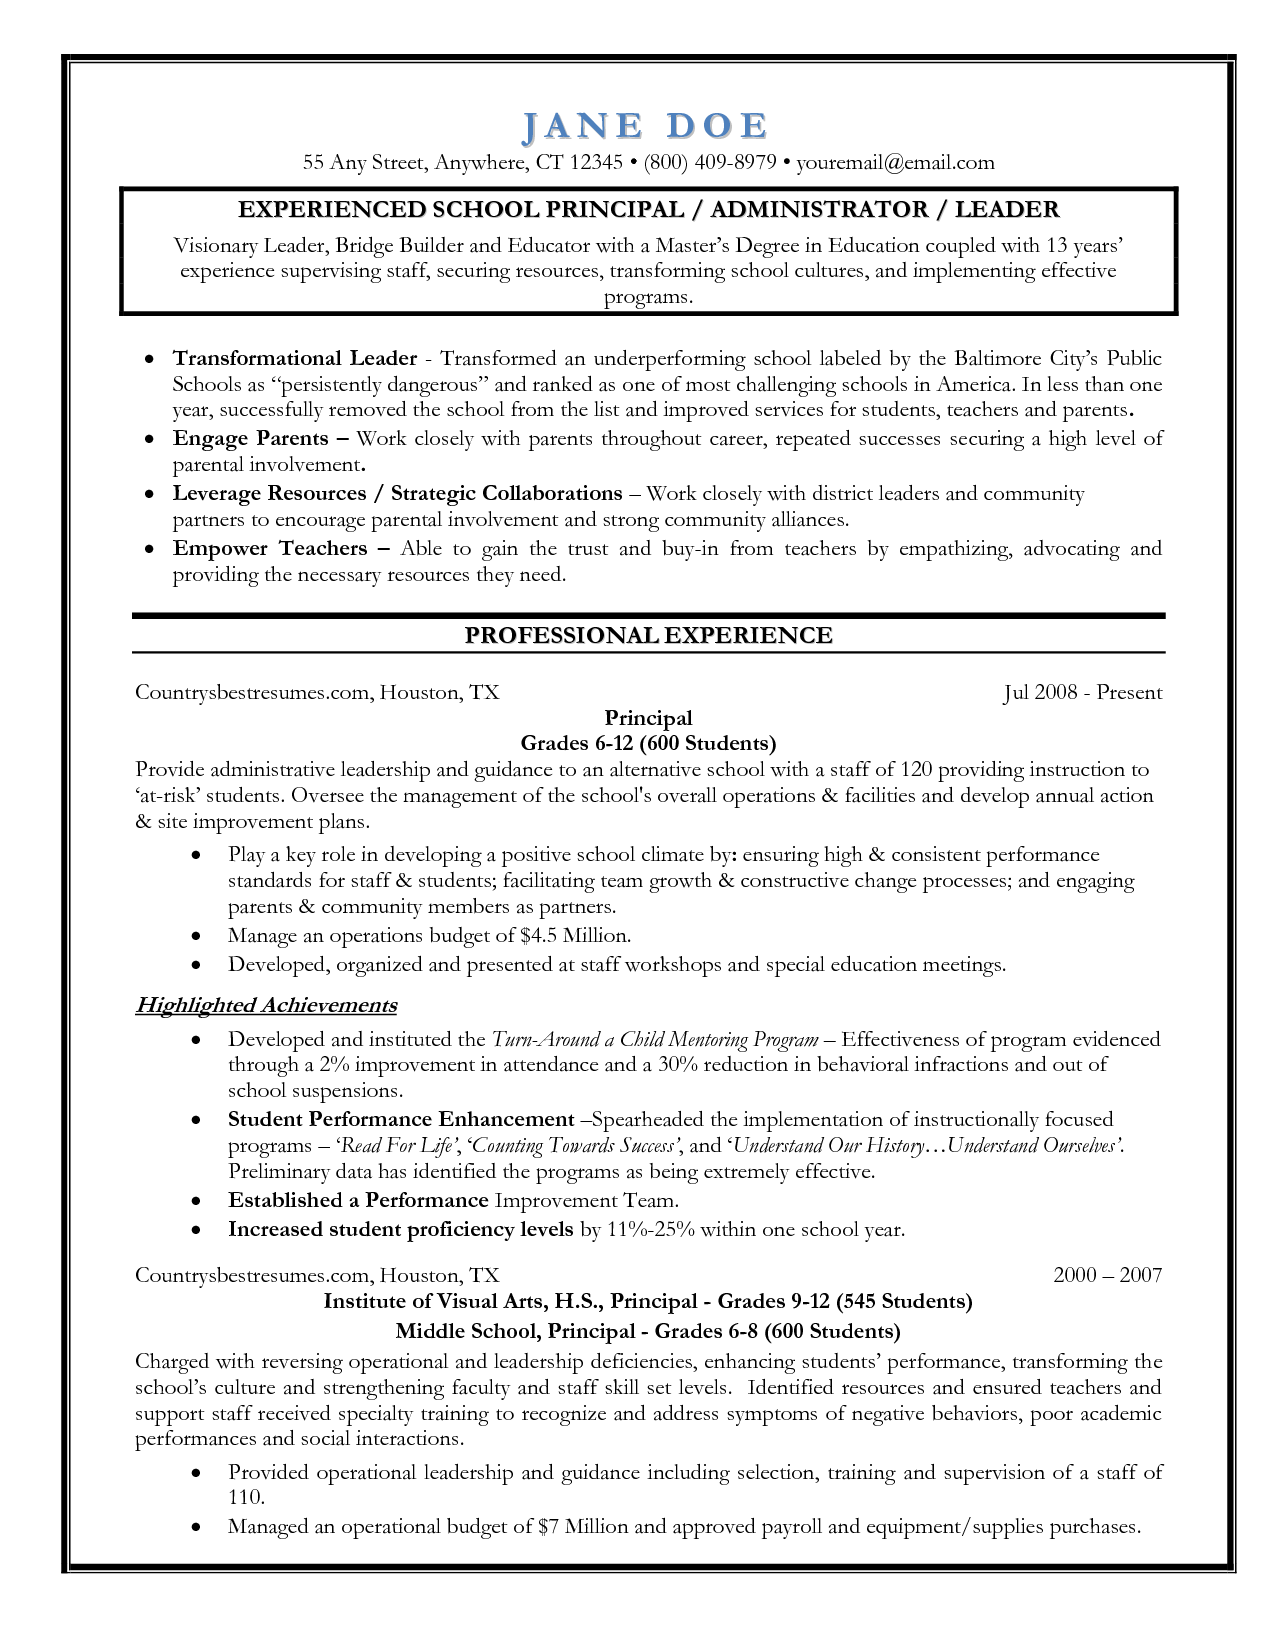 Administrator Resume Sample Amusing Entrylevel Assistant Principal Resume Templates  Senior Educator .